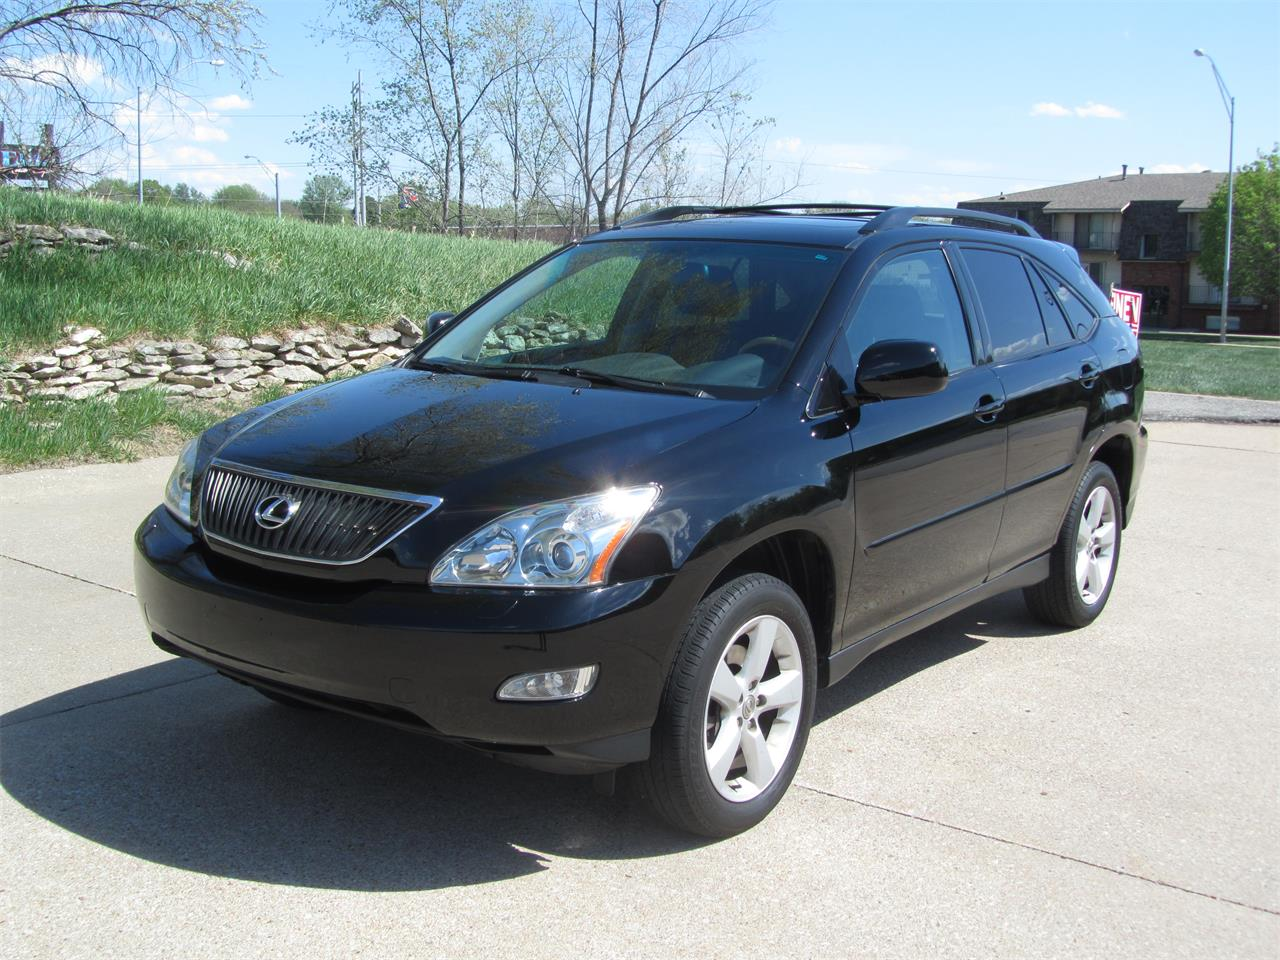 Large Picture of 2005 RX330 located in Nebraska Offered by Classic Auto Sales - NE2J